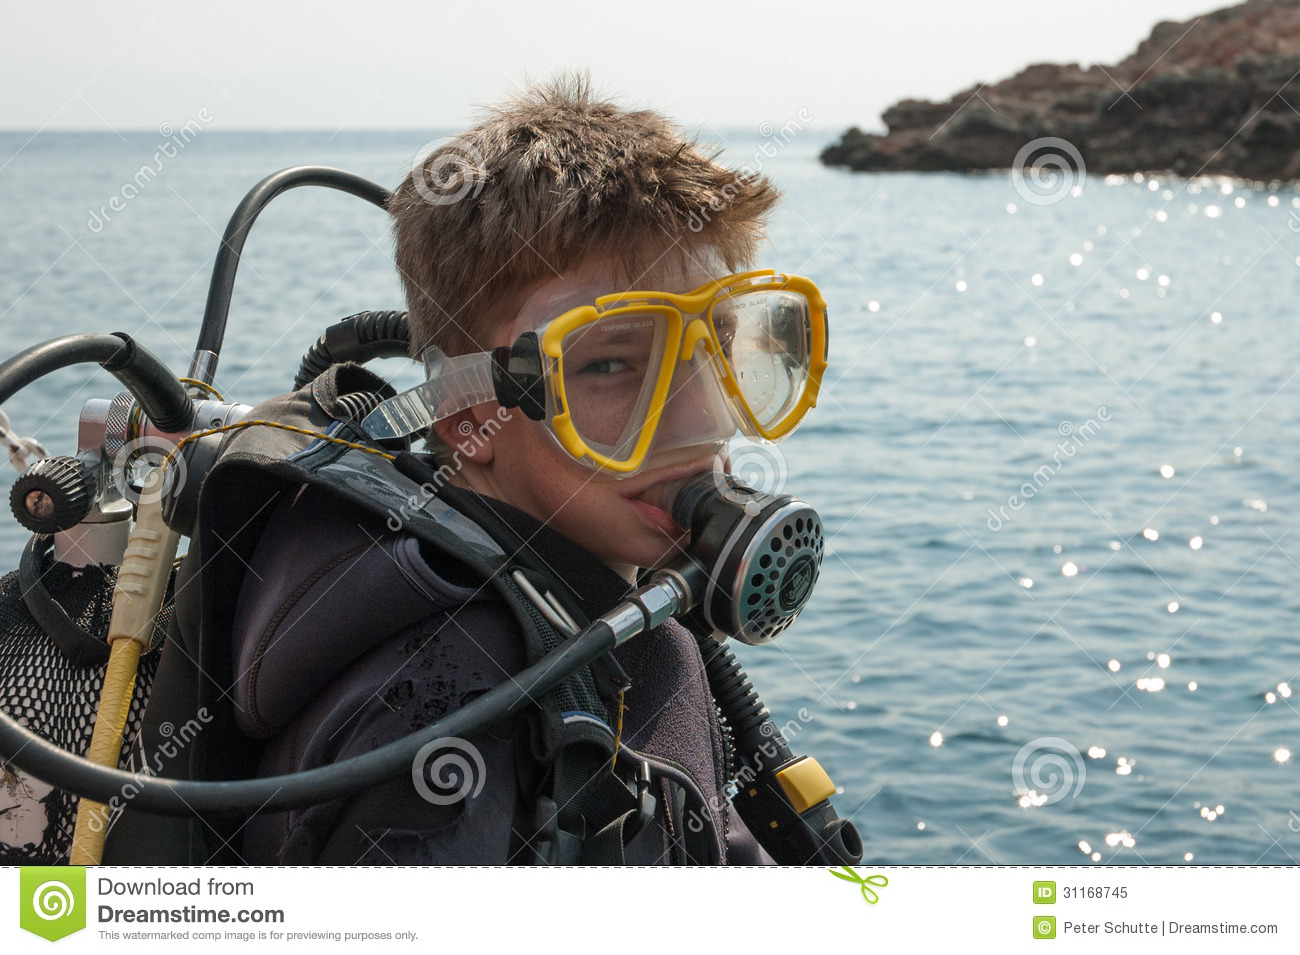 young boy in diving suit stock image image of sporty. Black Bedroom Furniture Sets. Home Design Ideas